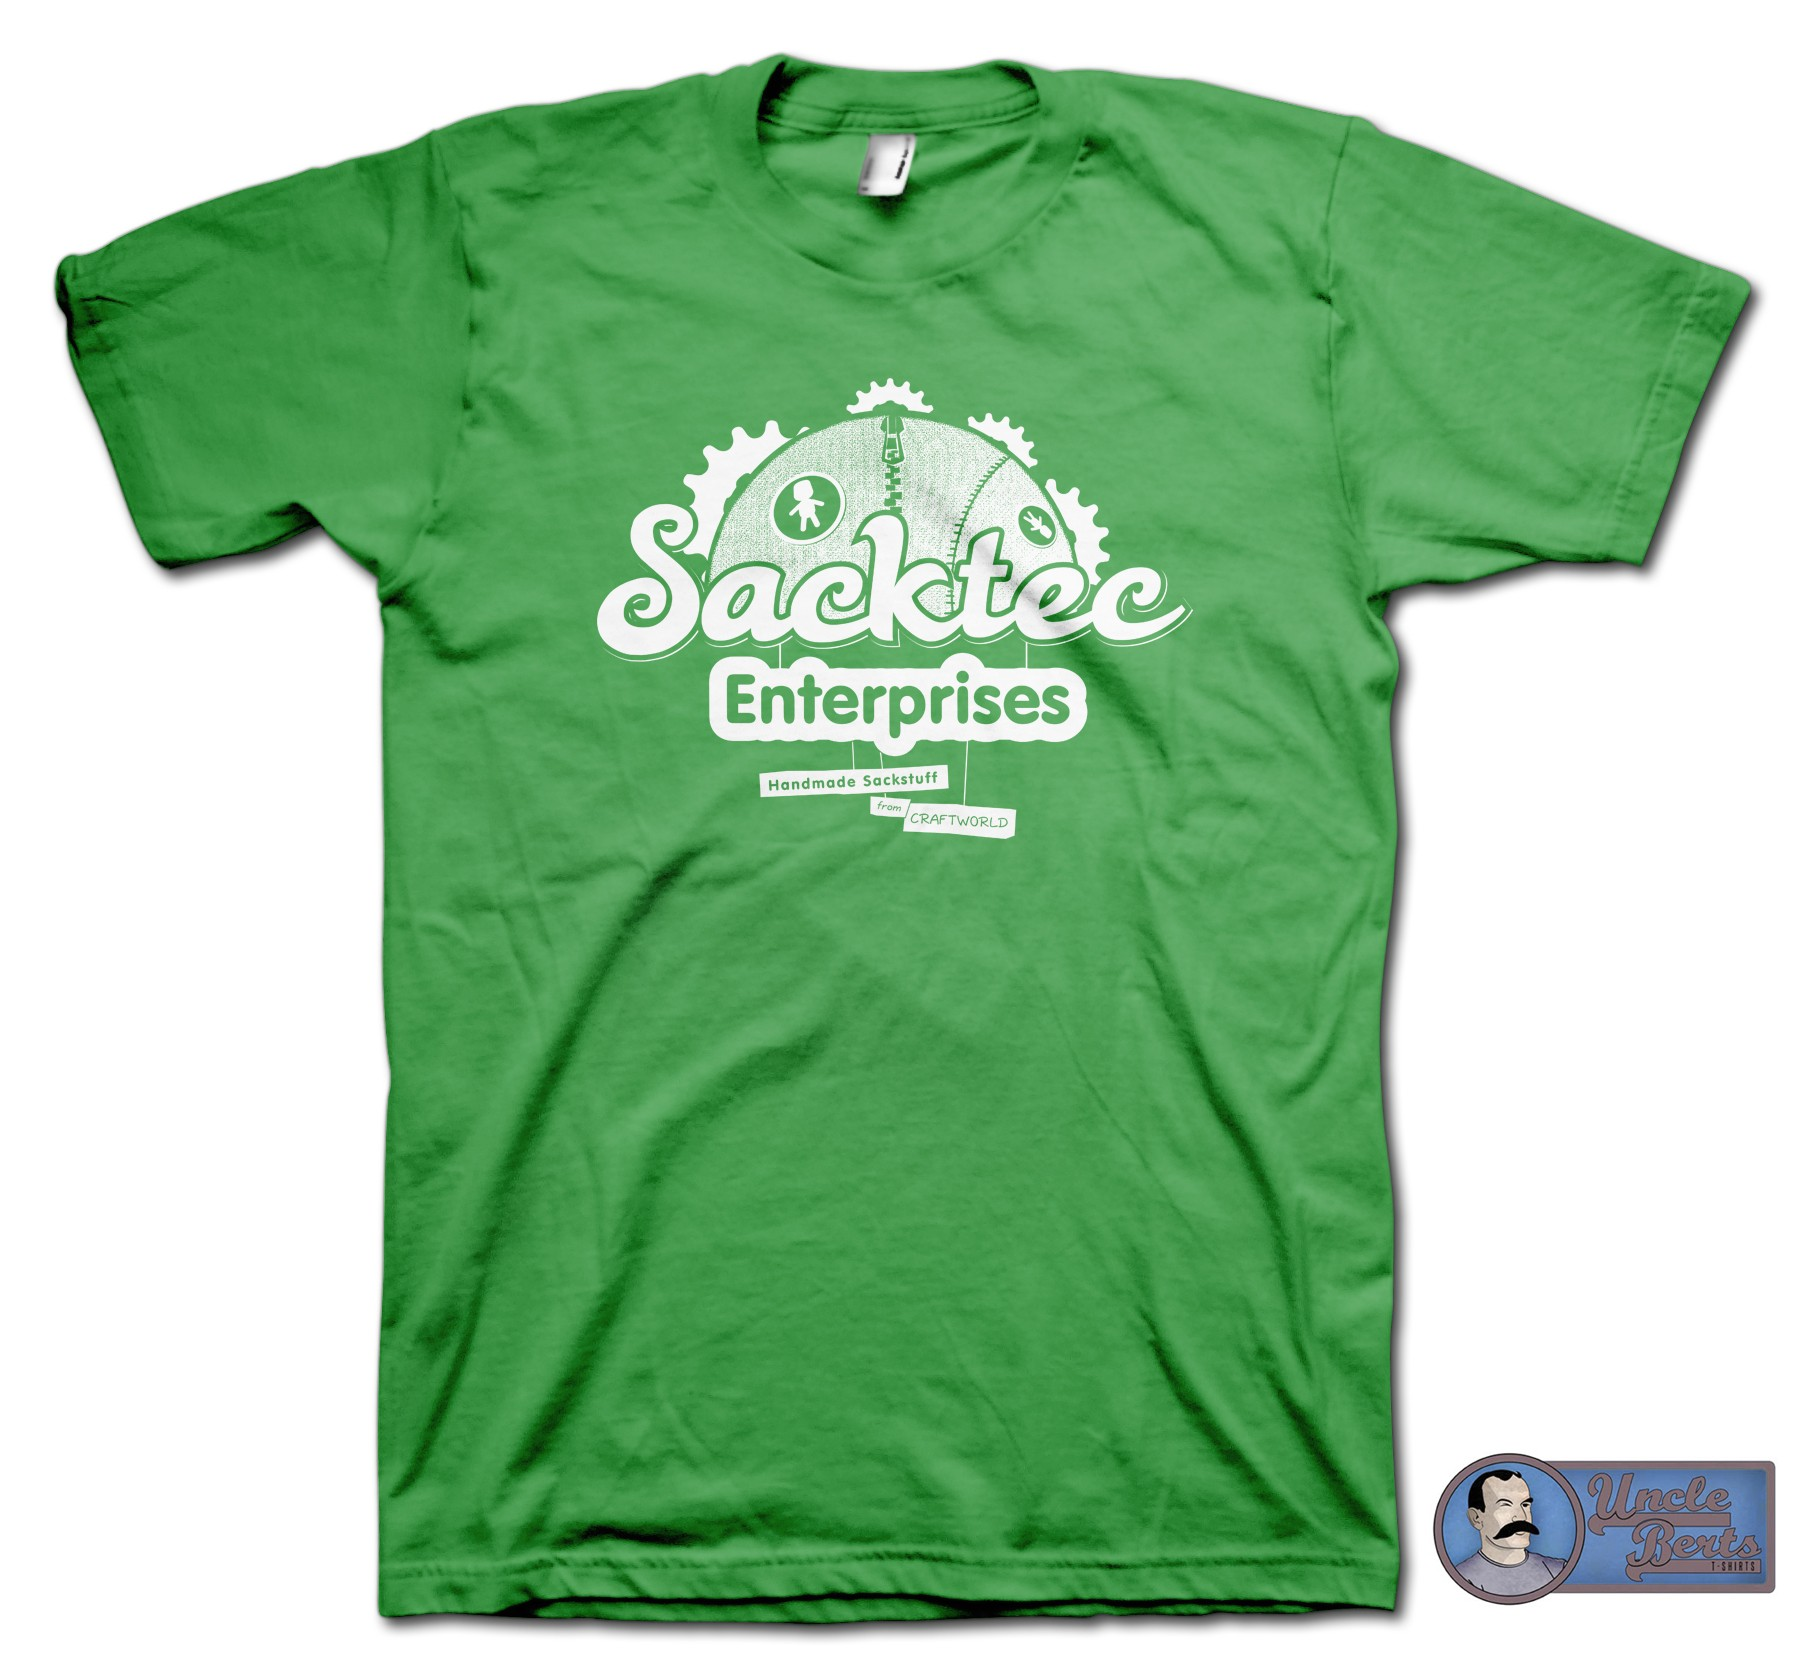 Sacktec Enterprises T-Shirt - inspired by the Little Big Planet series